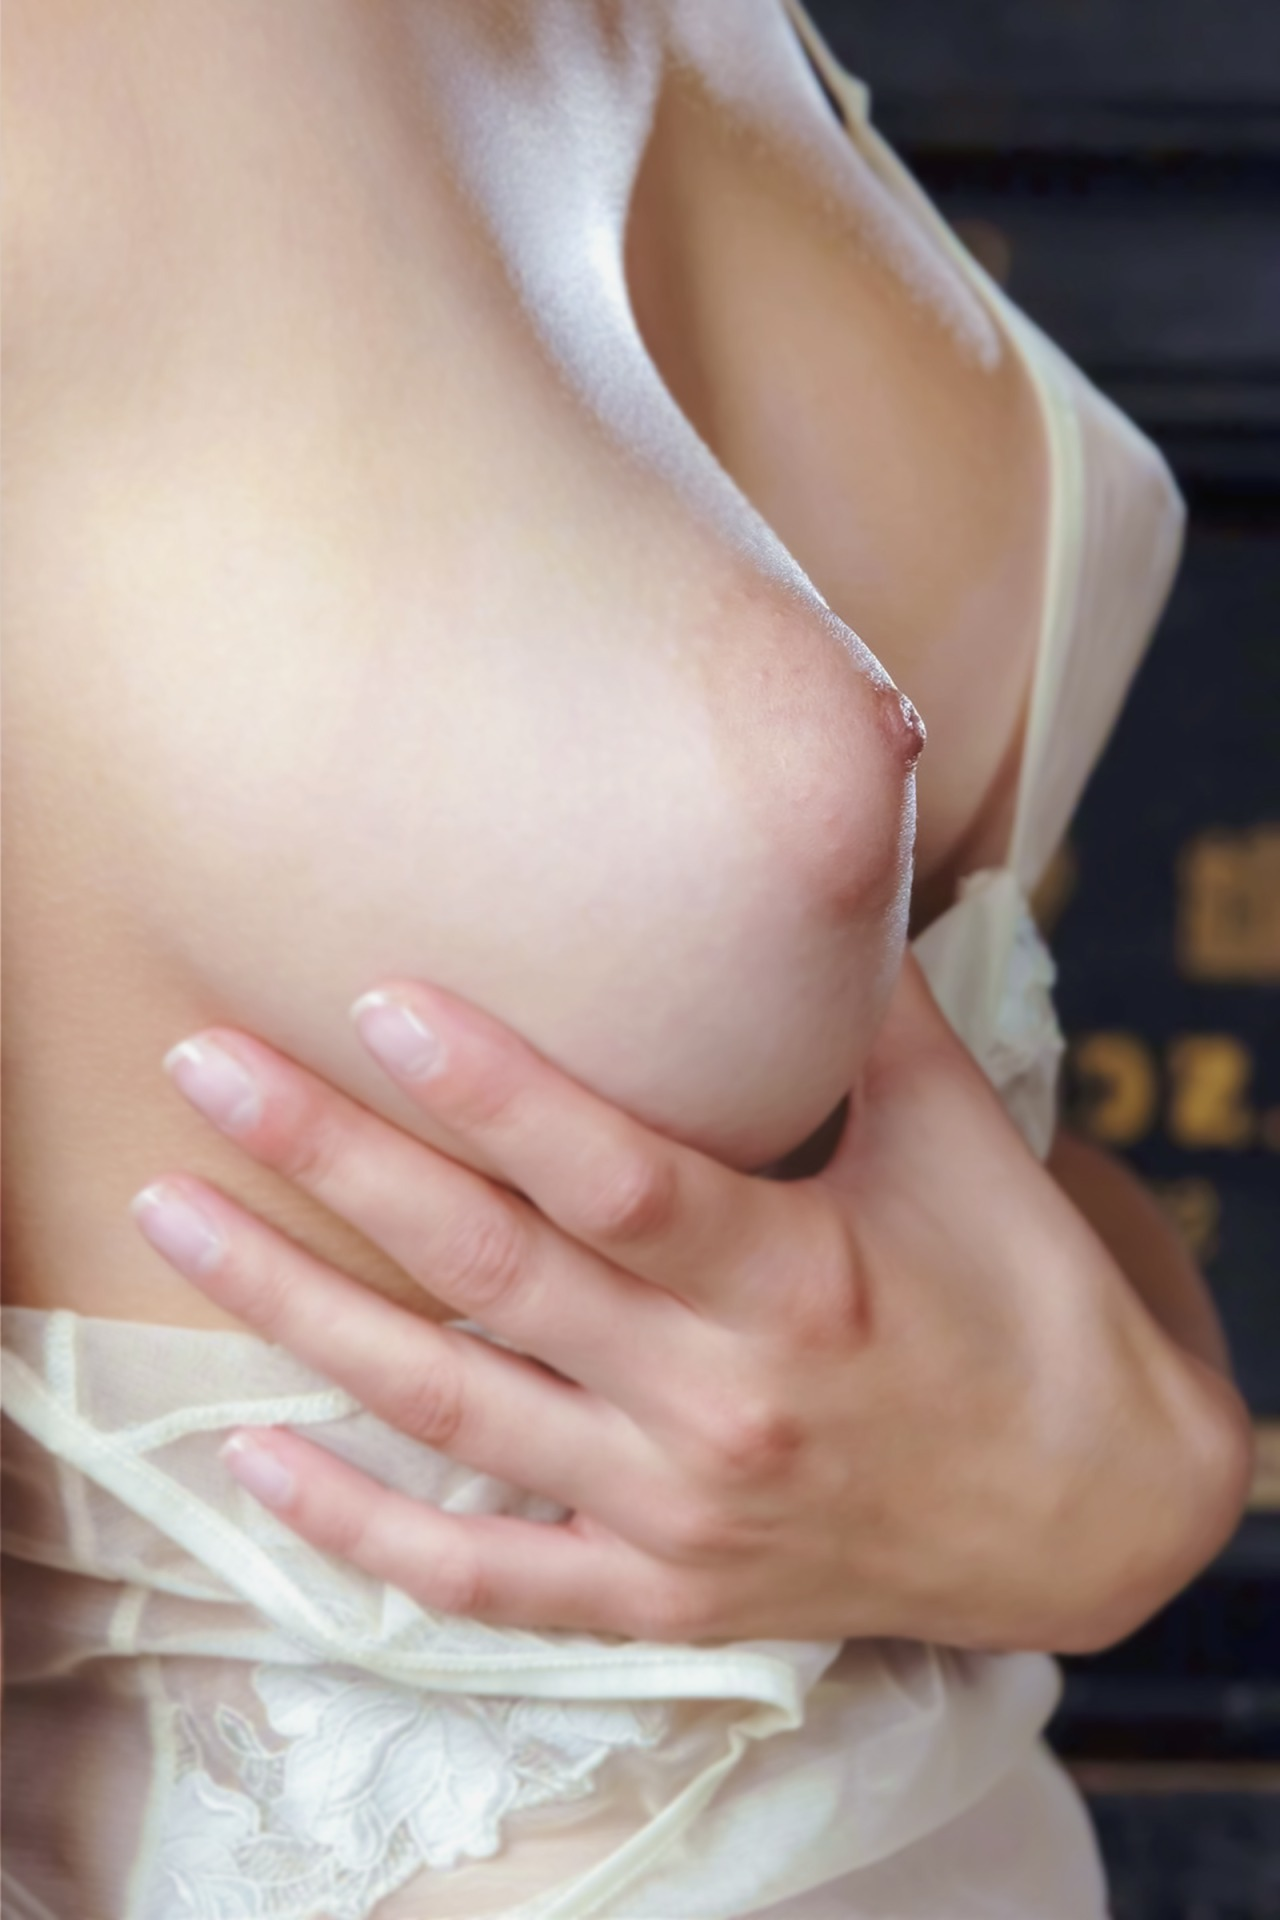 josh ohl free videos watch download and enjoy josh ohl Sexy Lingerie